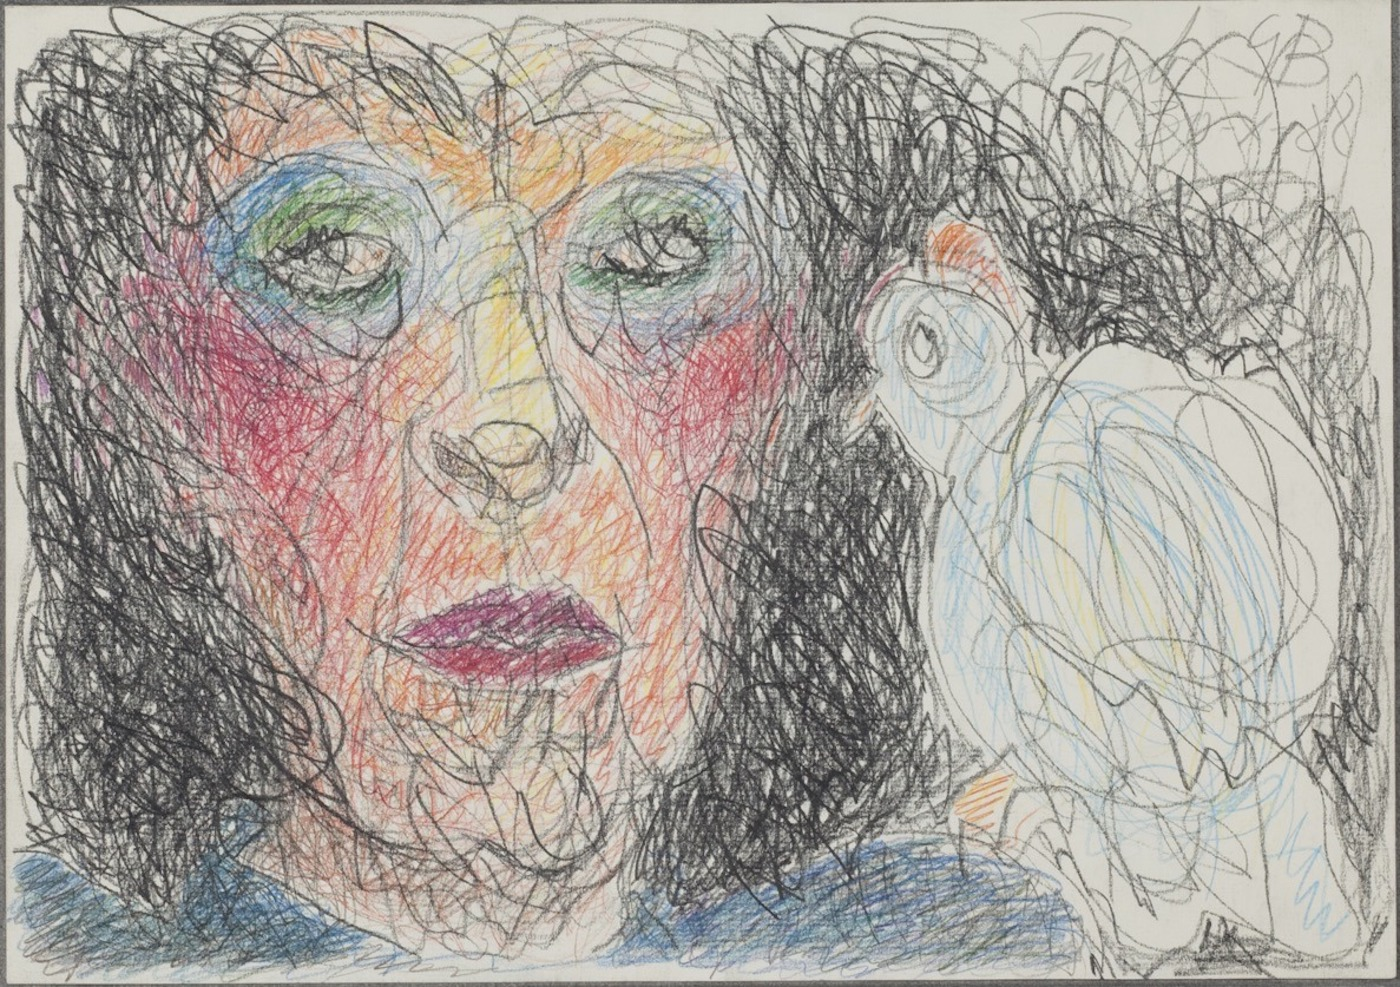 1436964494-self-portrait with bird 1988 drawing small